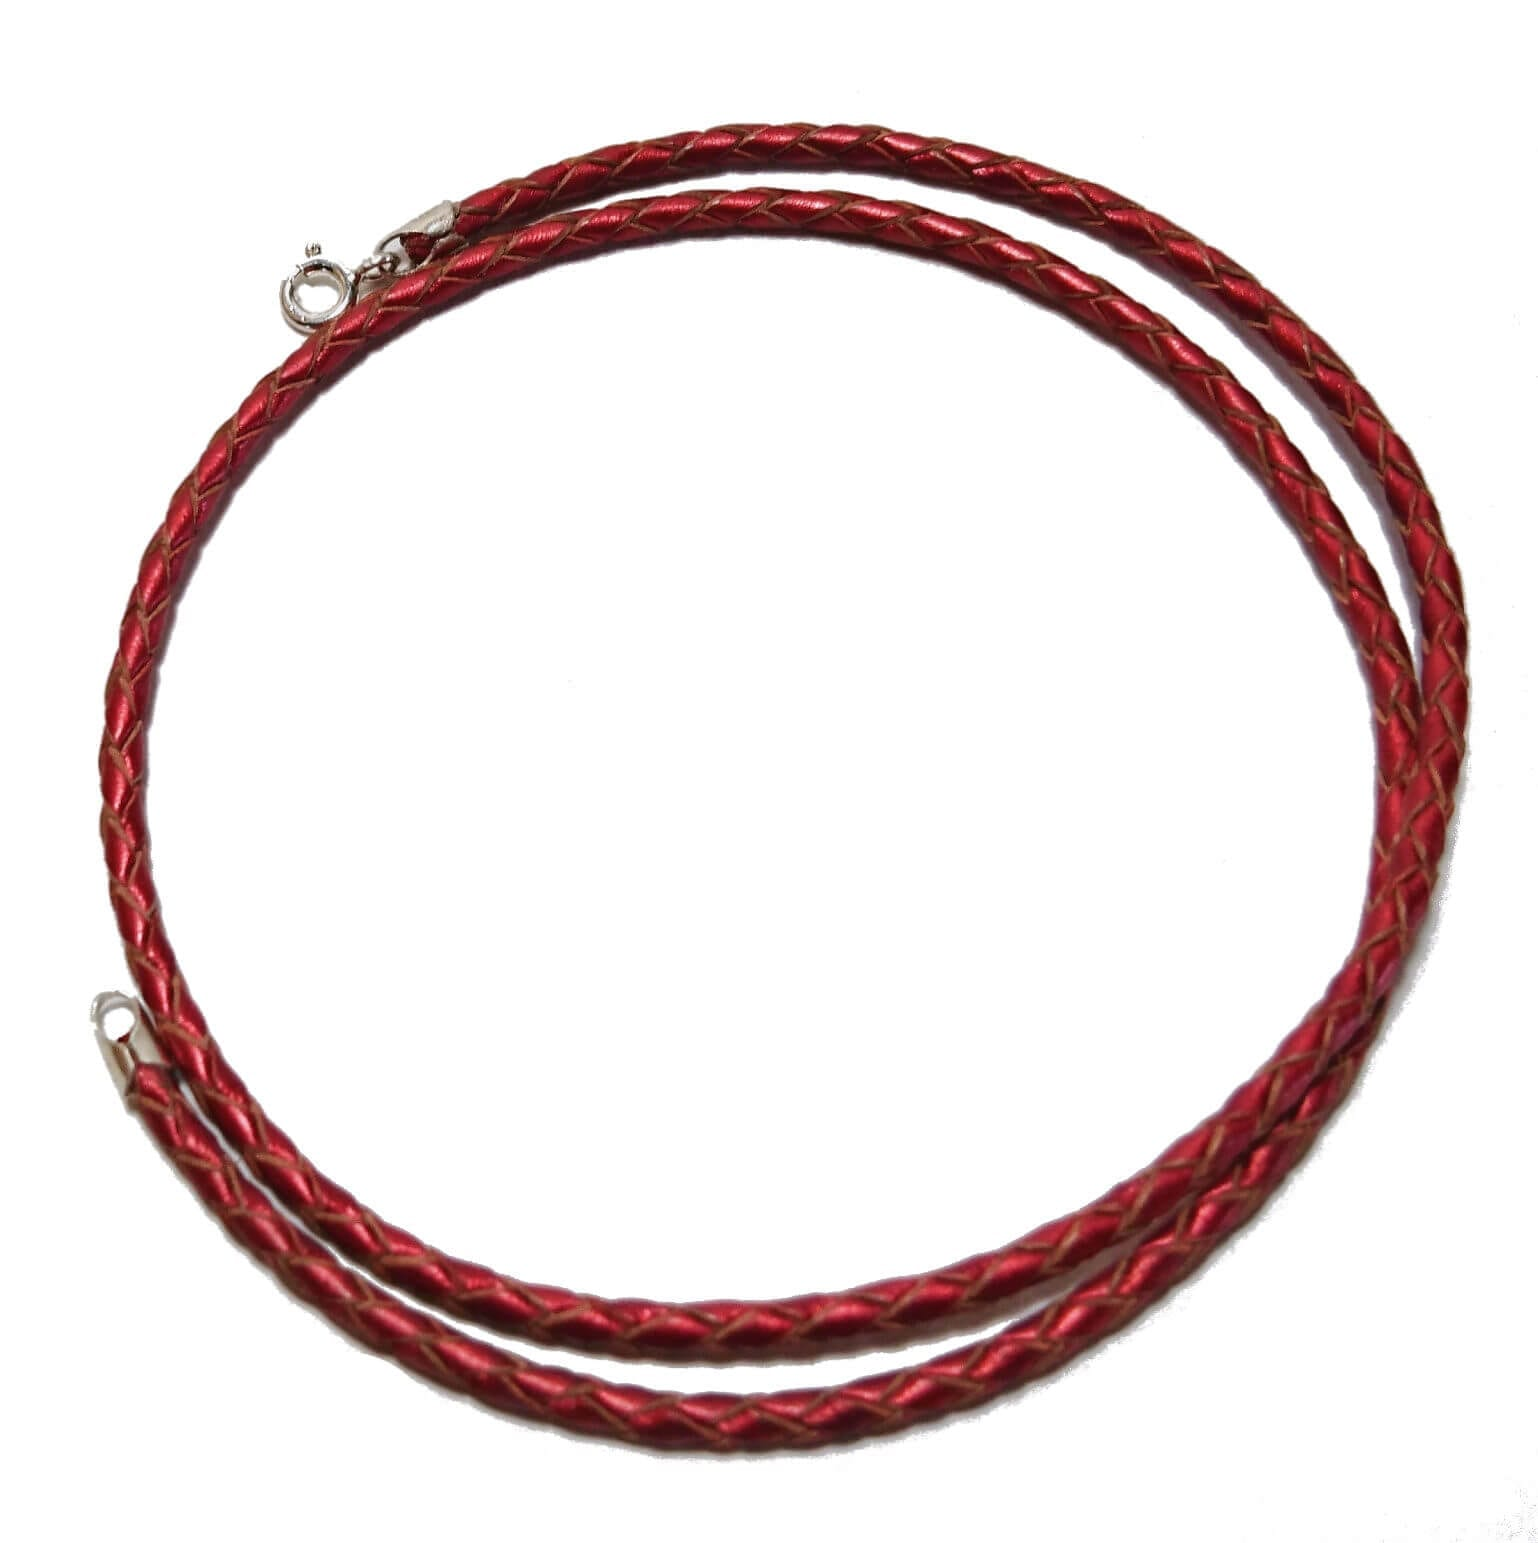 red-metallic-braided-leather-necklace